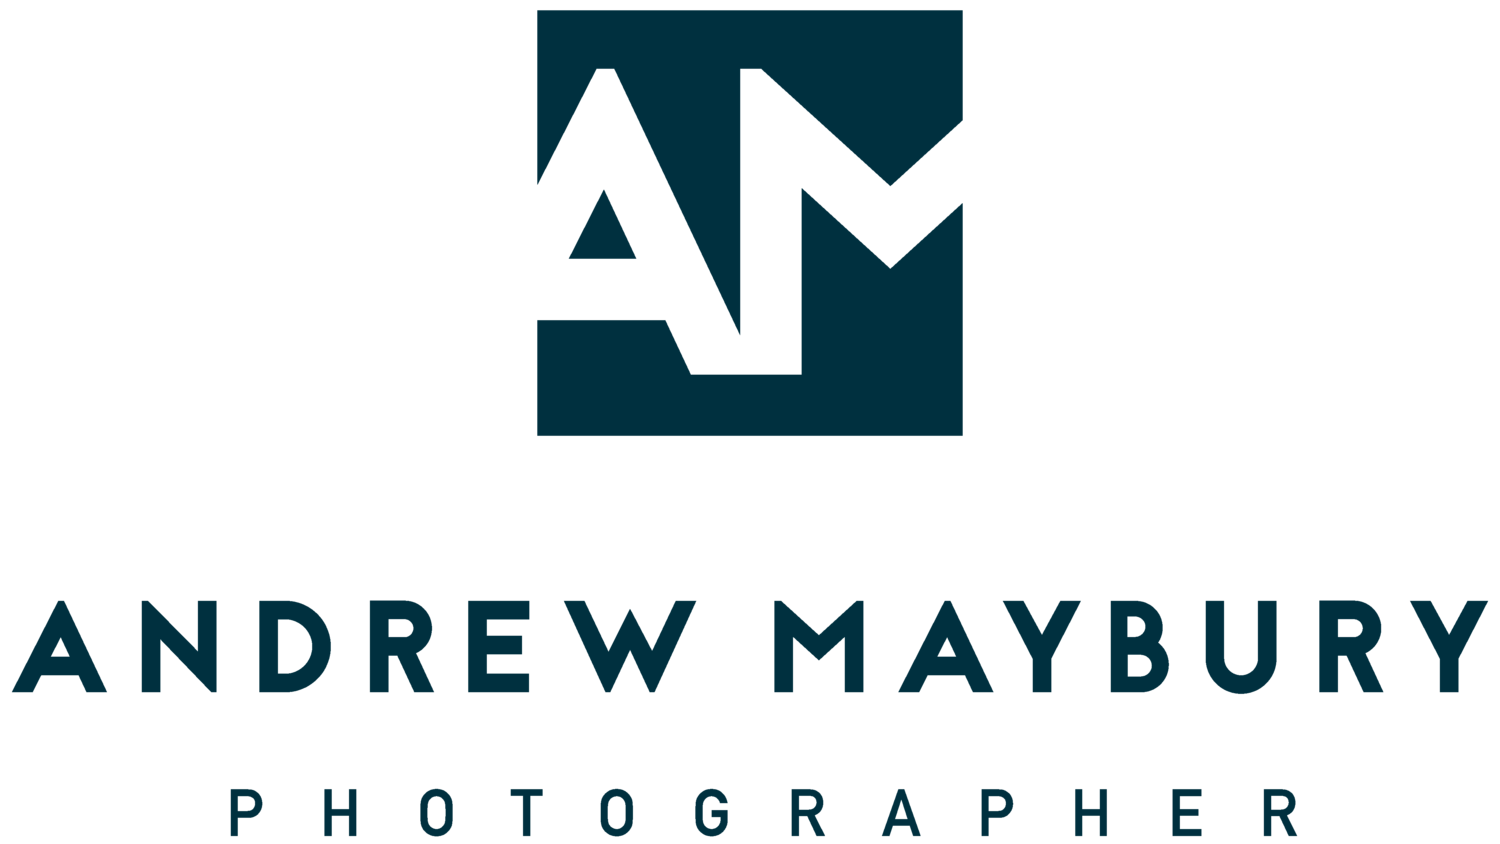 Andrew Maybury Photography